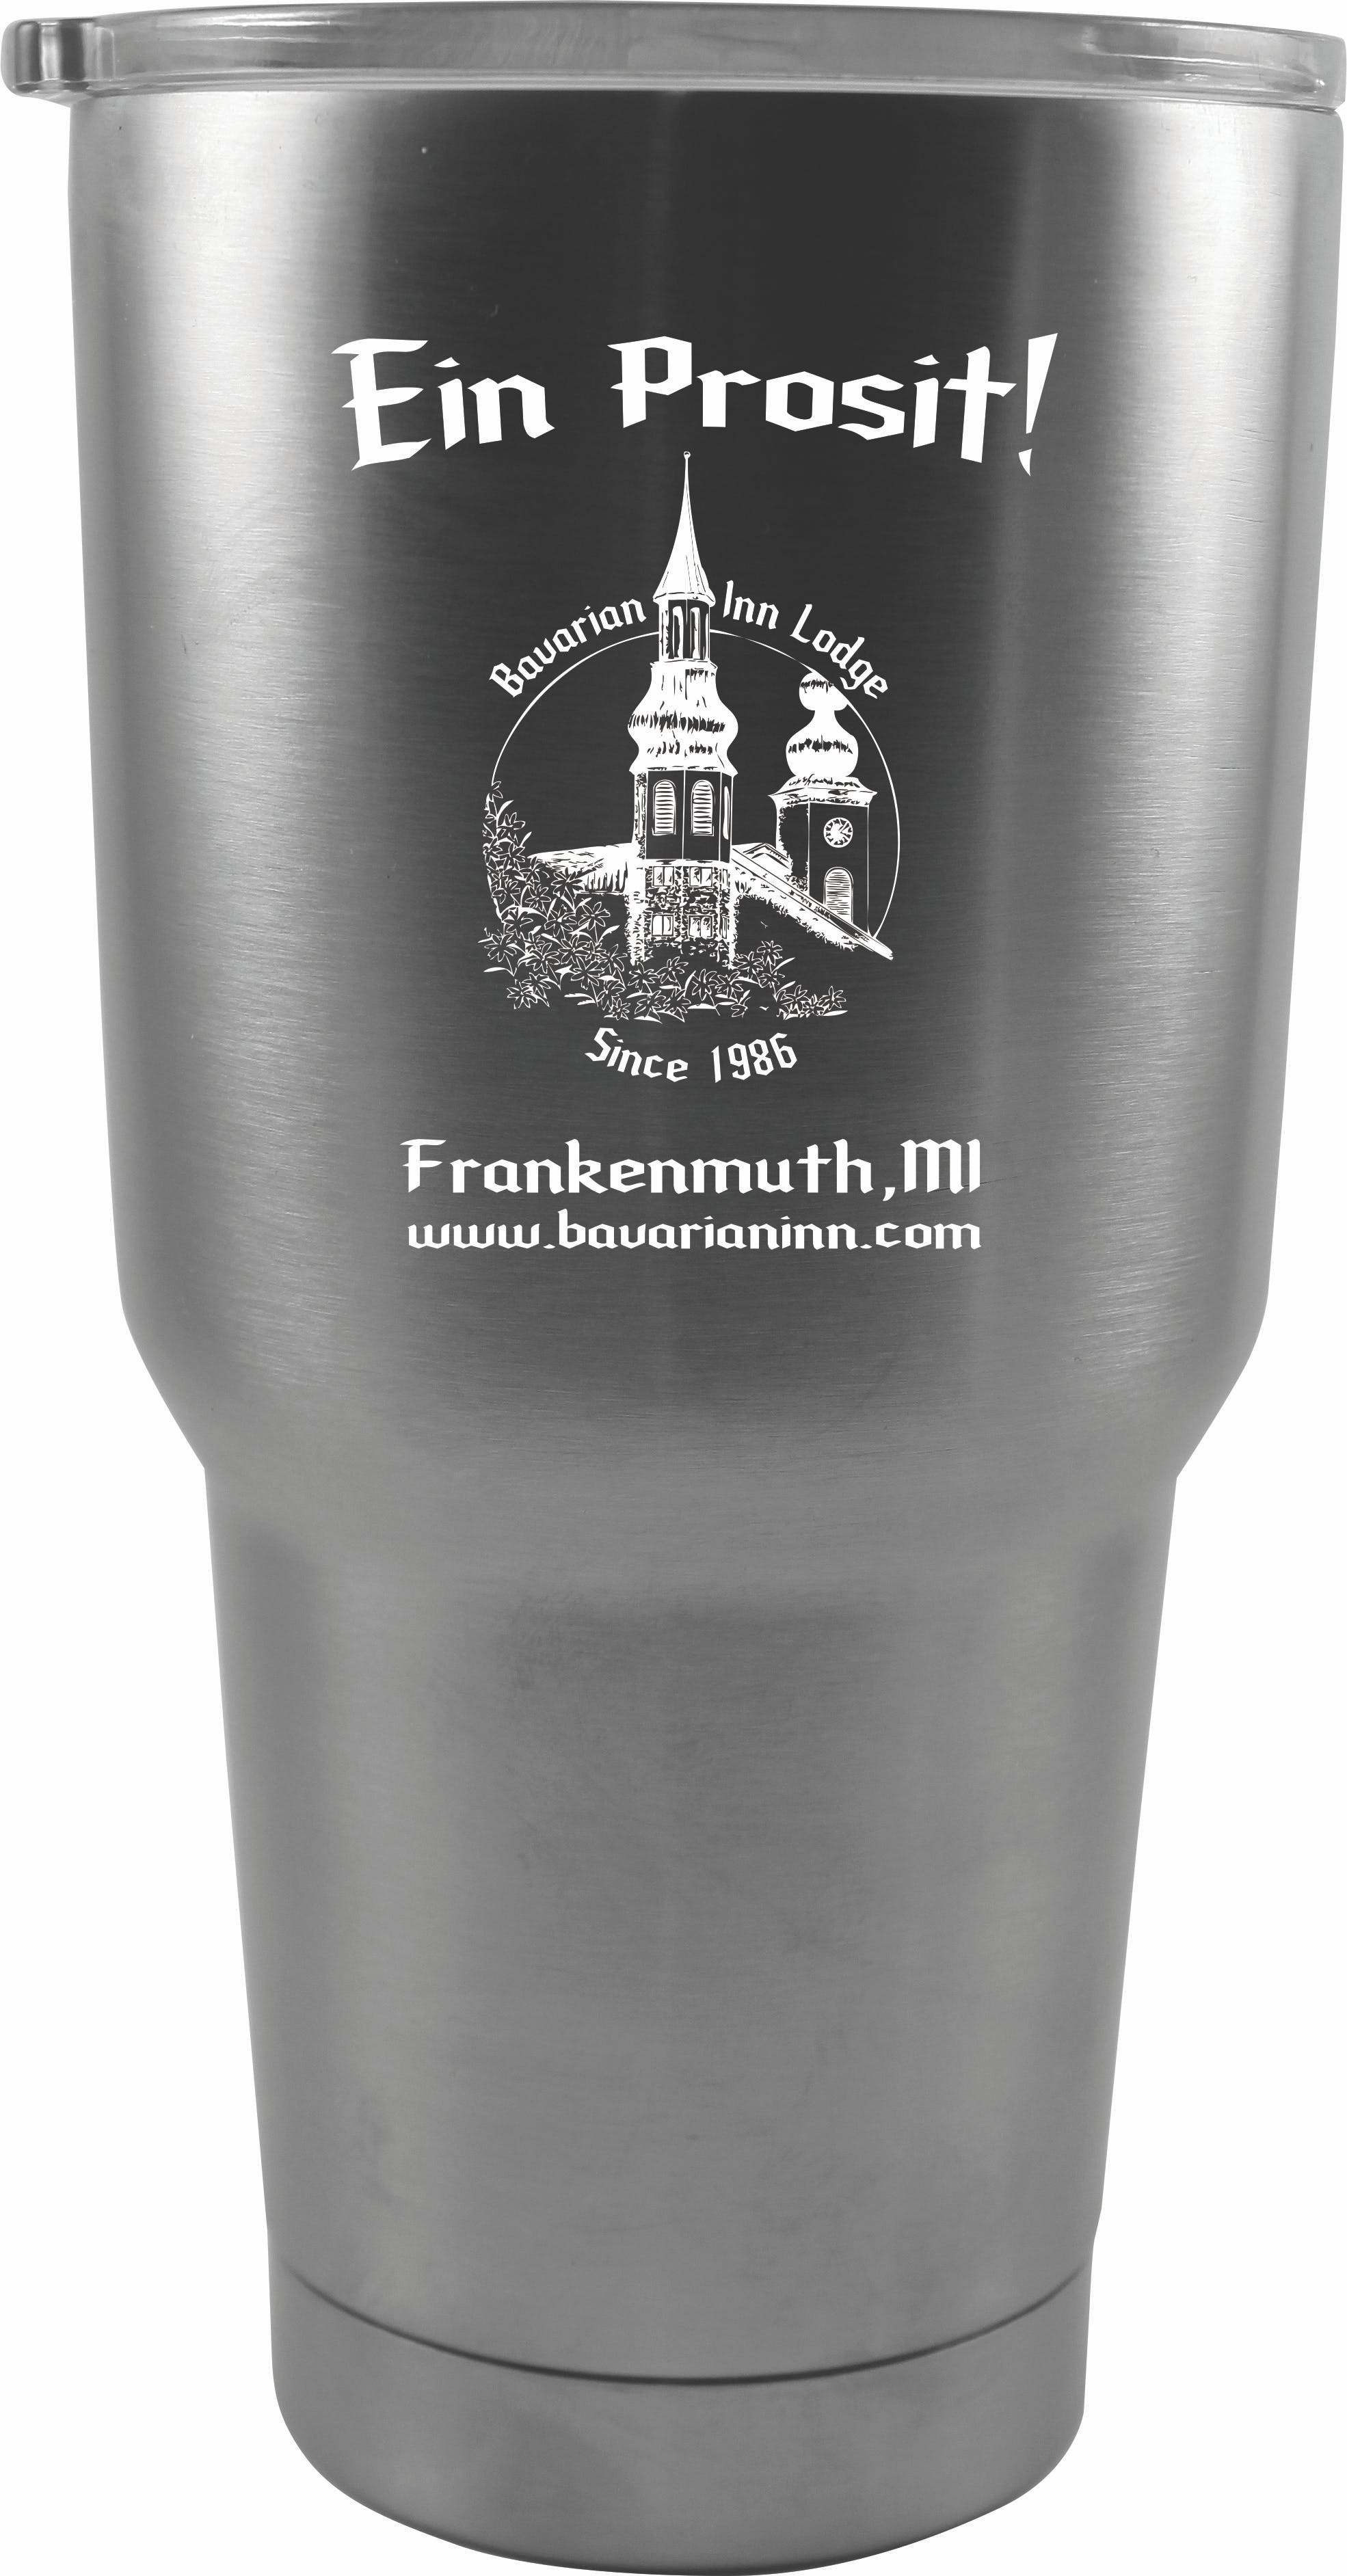 30 oz. The BOSS Stainless Steel Promotional product sold by Prestige Glassware